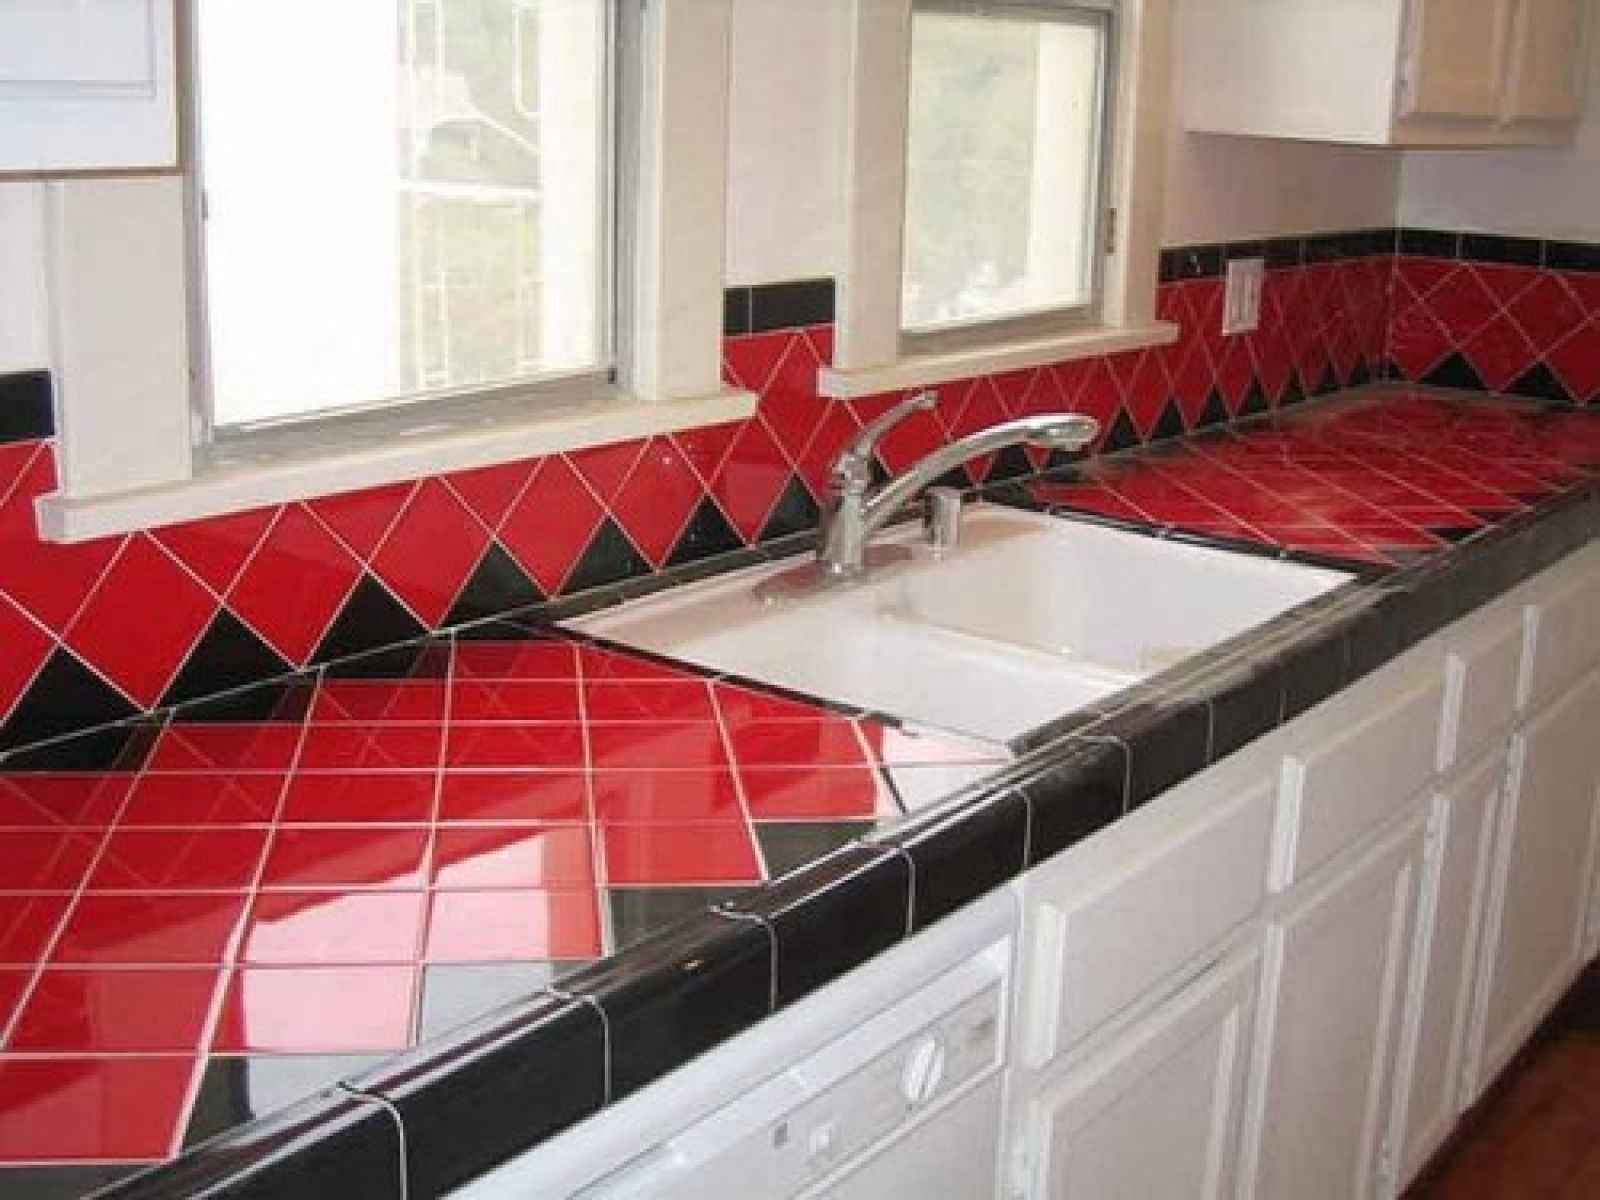 The Biggest Problem With Tile Is You Also Have To Clean The Grout, Which  Can Take A Lot Of Time Or Cost Extra Money In The Long Run, And People  Probably Got ...